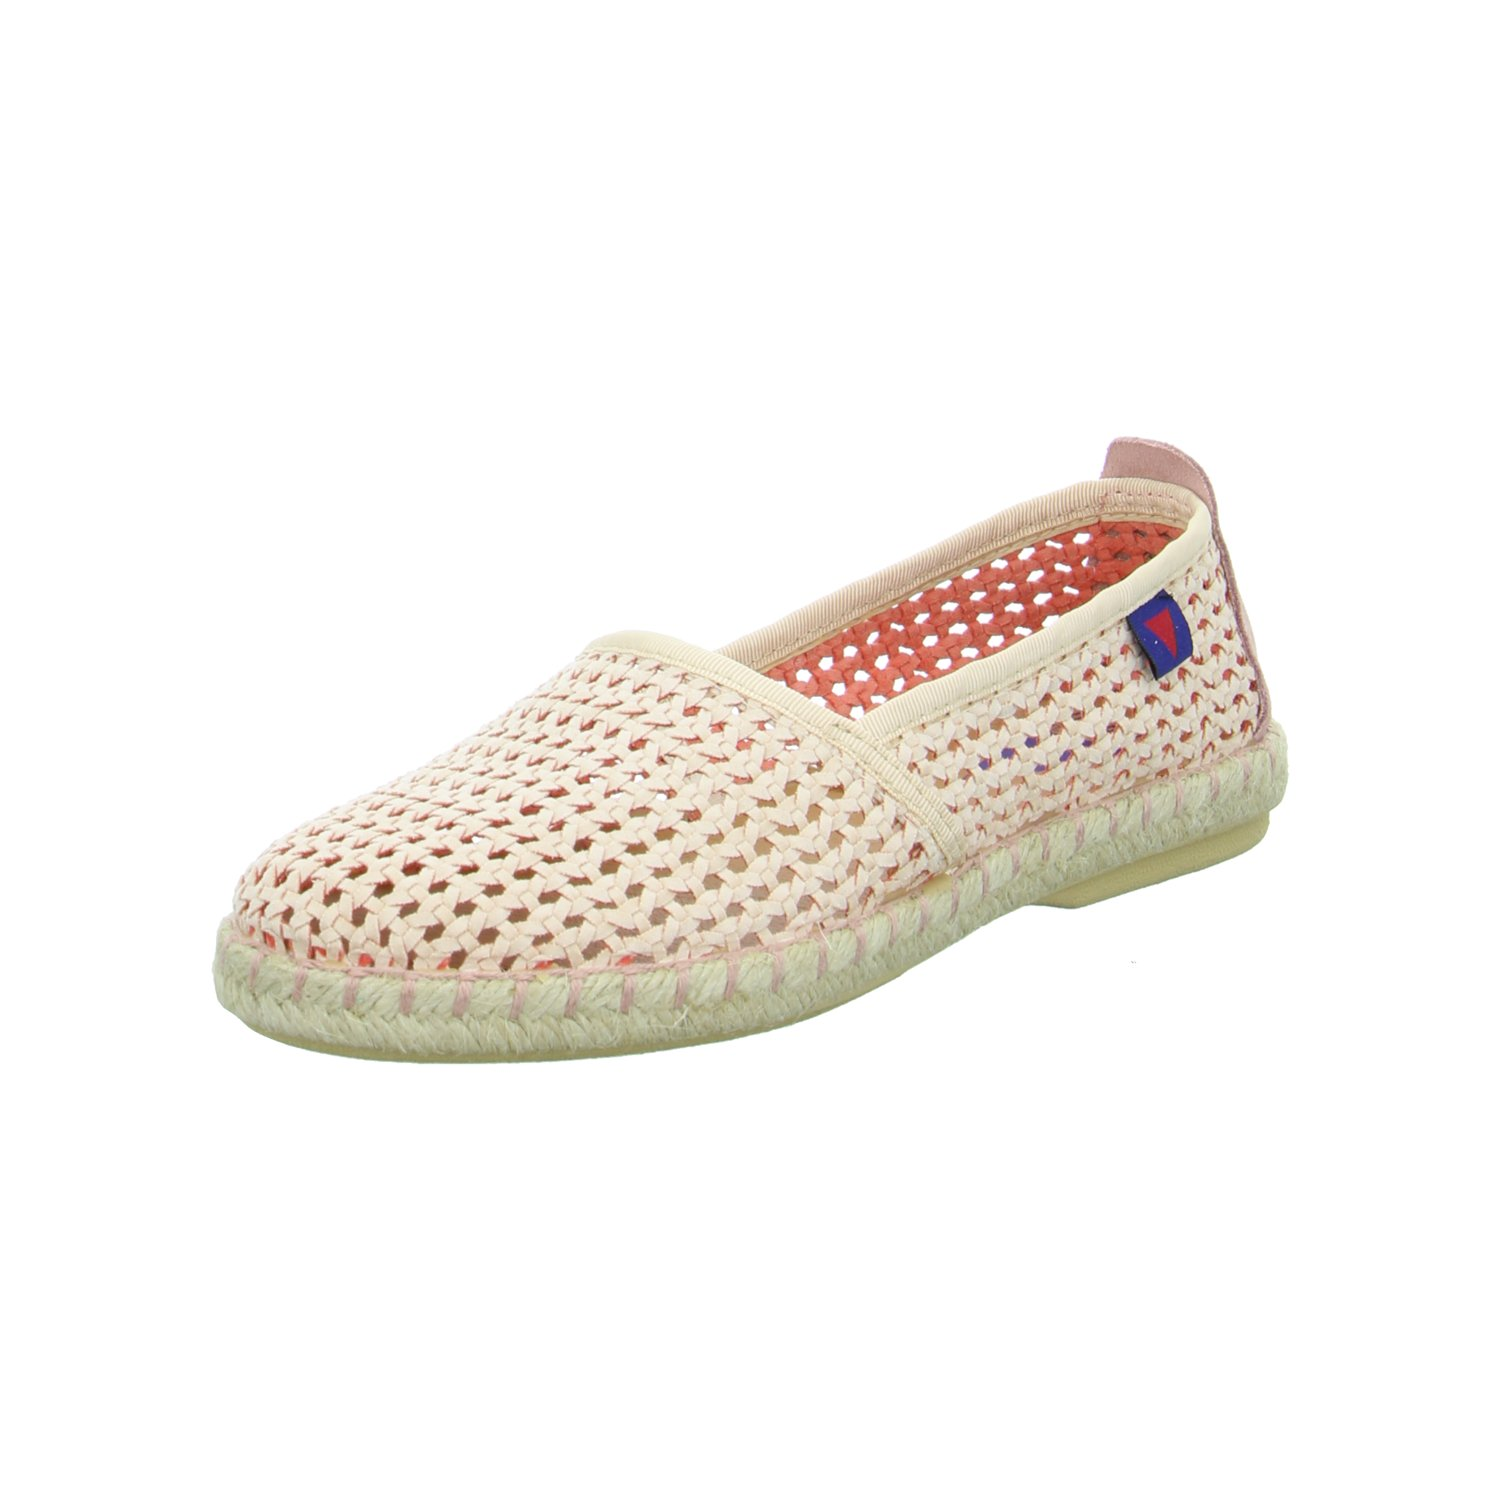 VERBENAS Women s Shoes Slippers  Amazon.co.uk  Shoes   Bags cf338e9ec